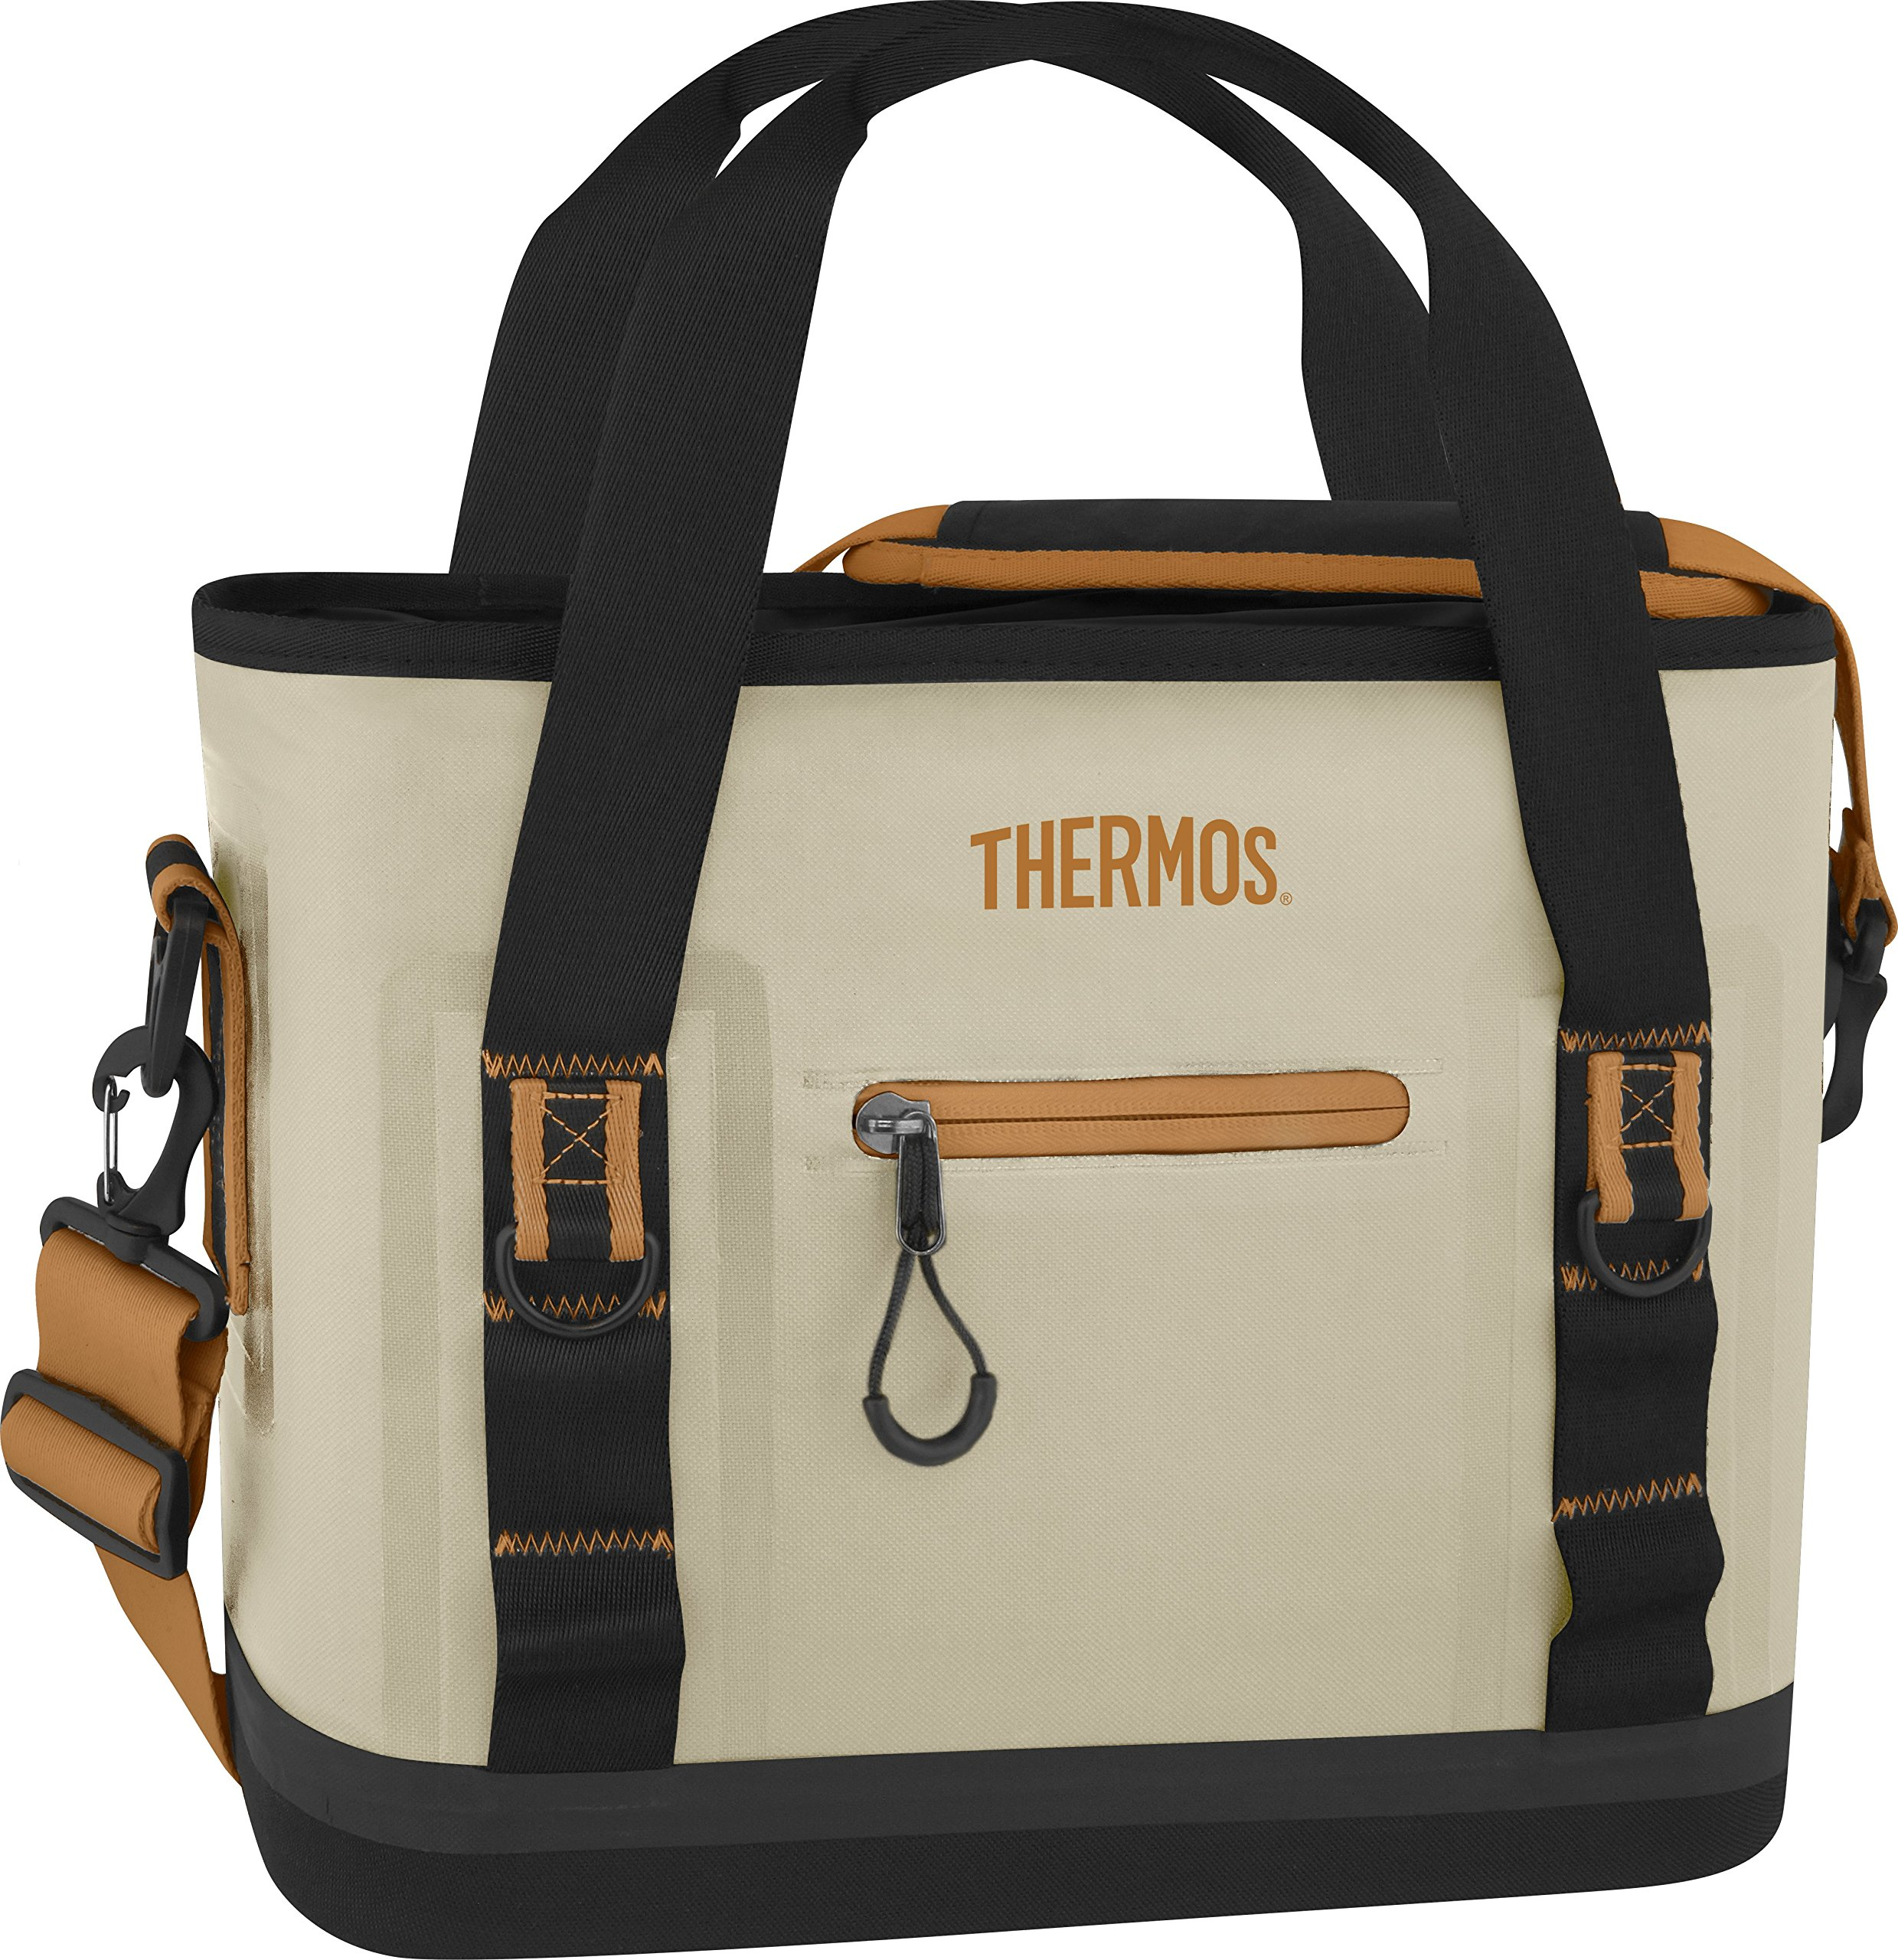 Thermos Trailsman 12 Can Tote, Cream/Tan by Thermos